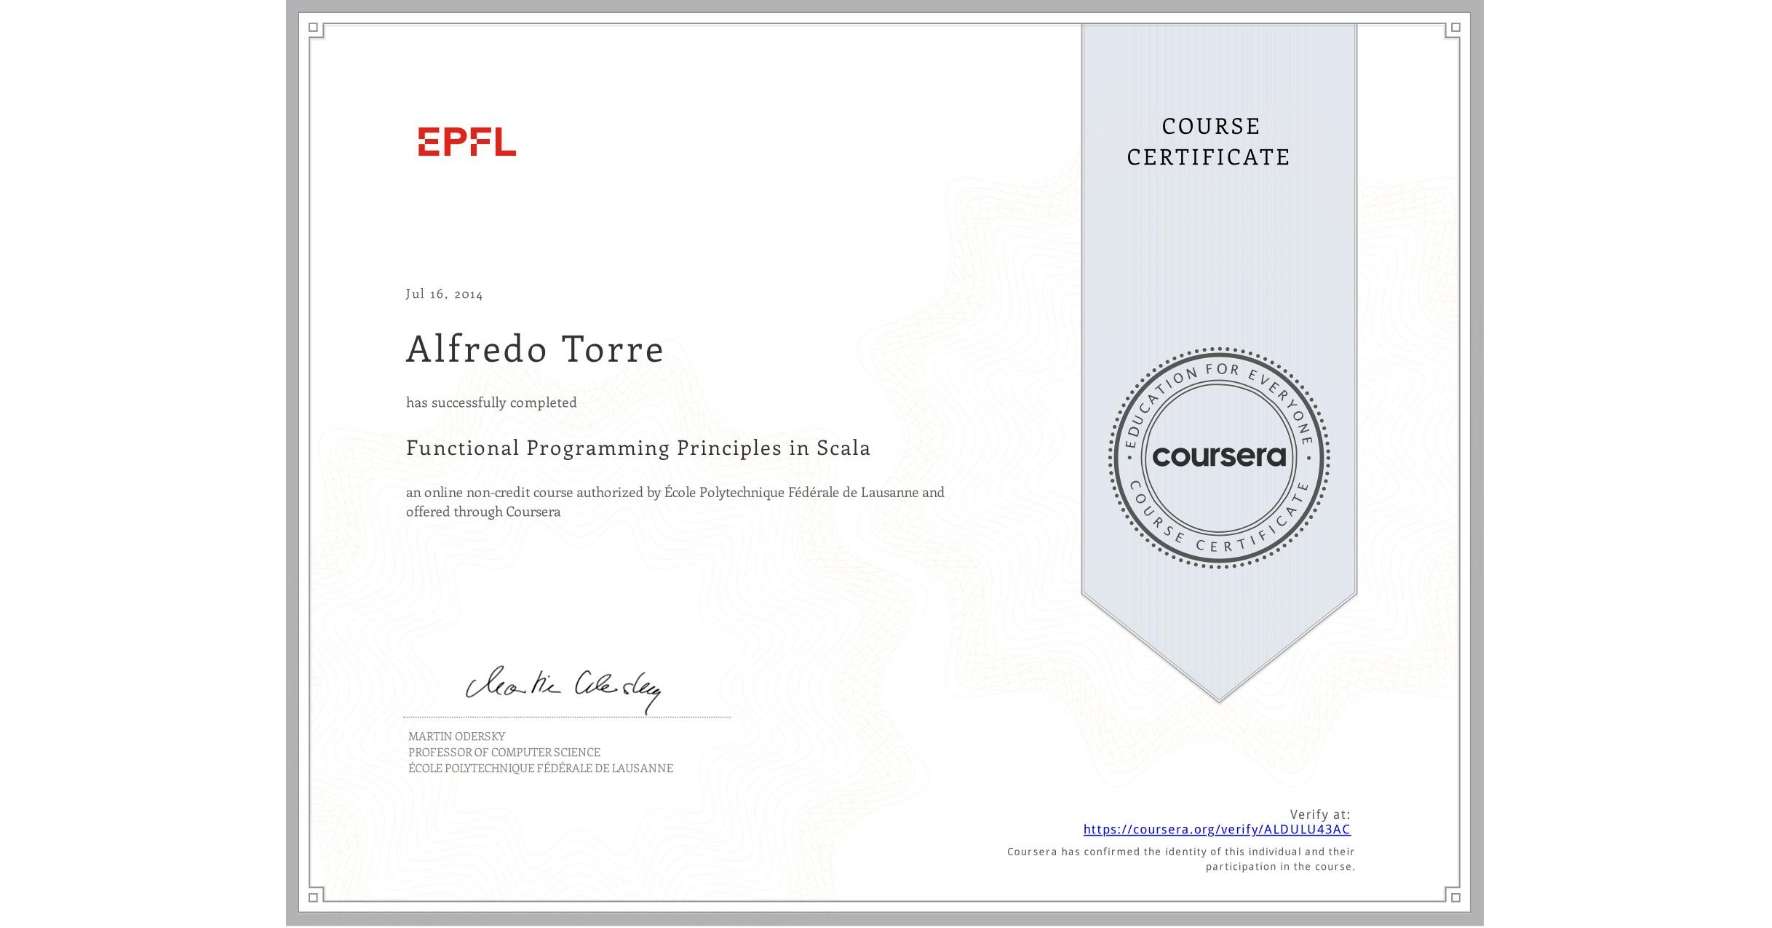 View certificate for Alfredo Torre, Functional Programming Principles in Scala, an online non-credit course authorized by École Polytechnique Fédérale de Lausanne and offered through Coursera